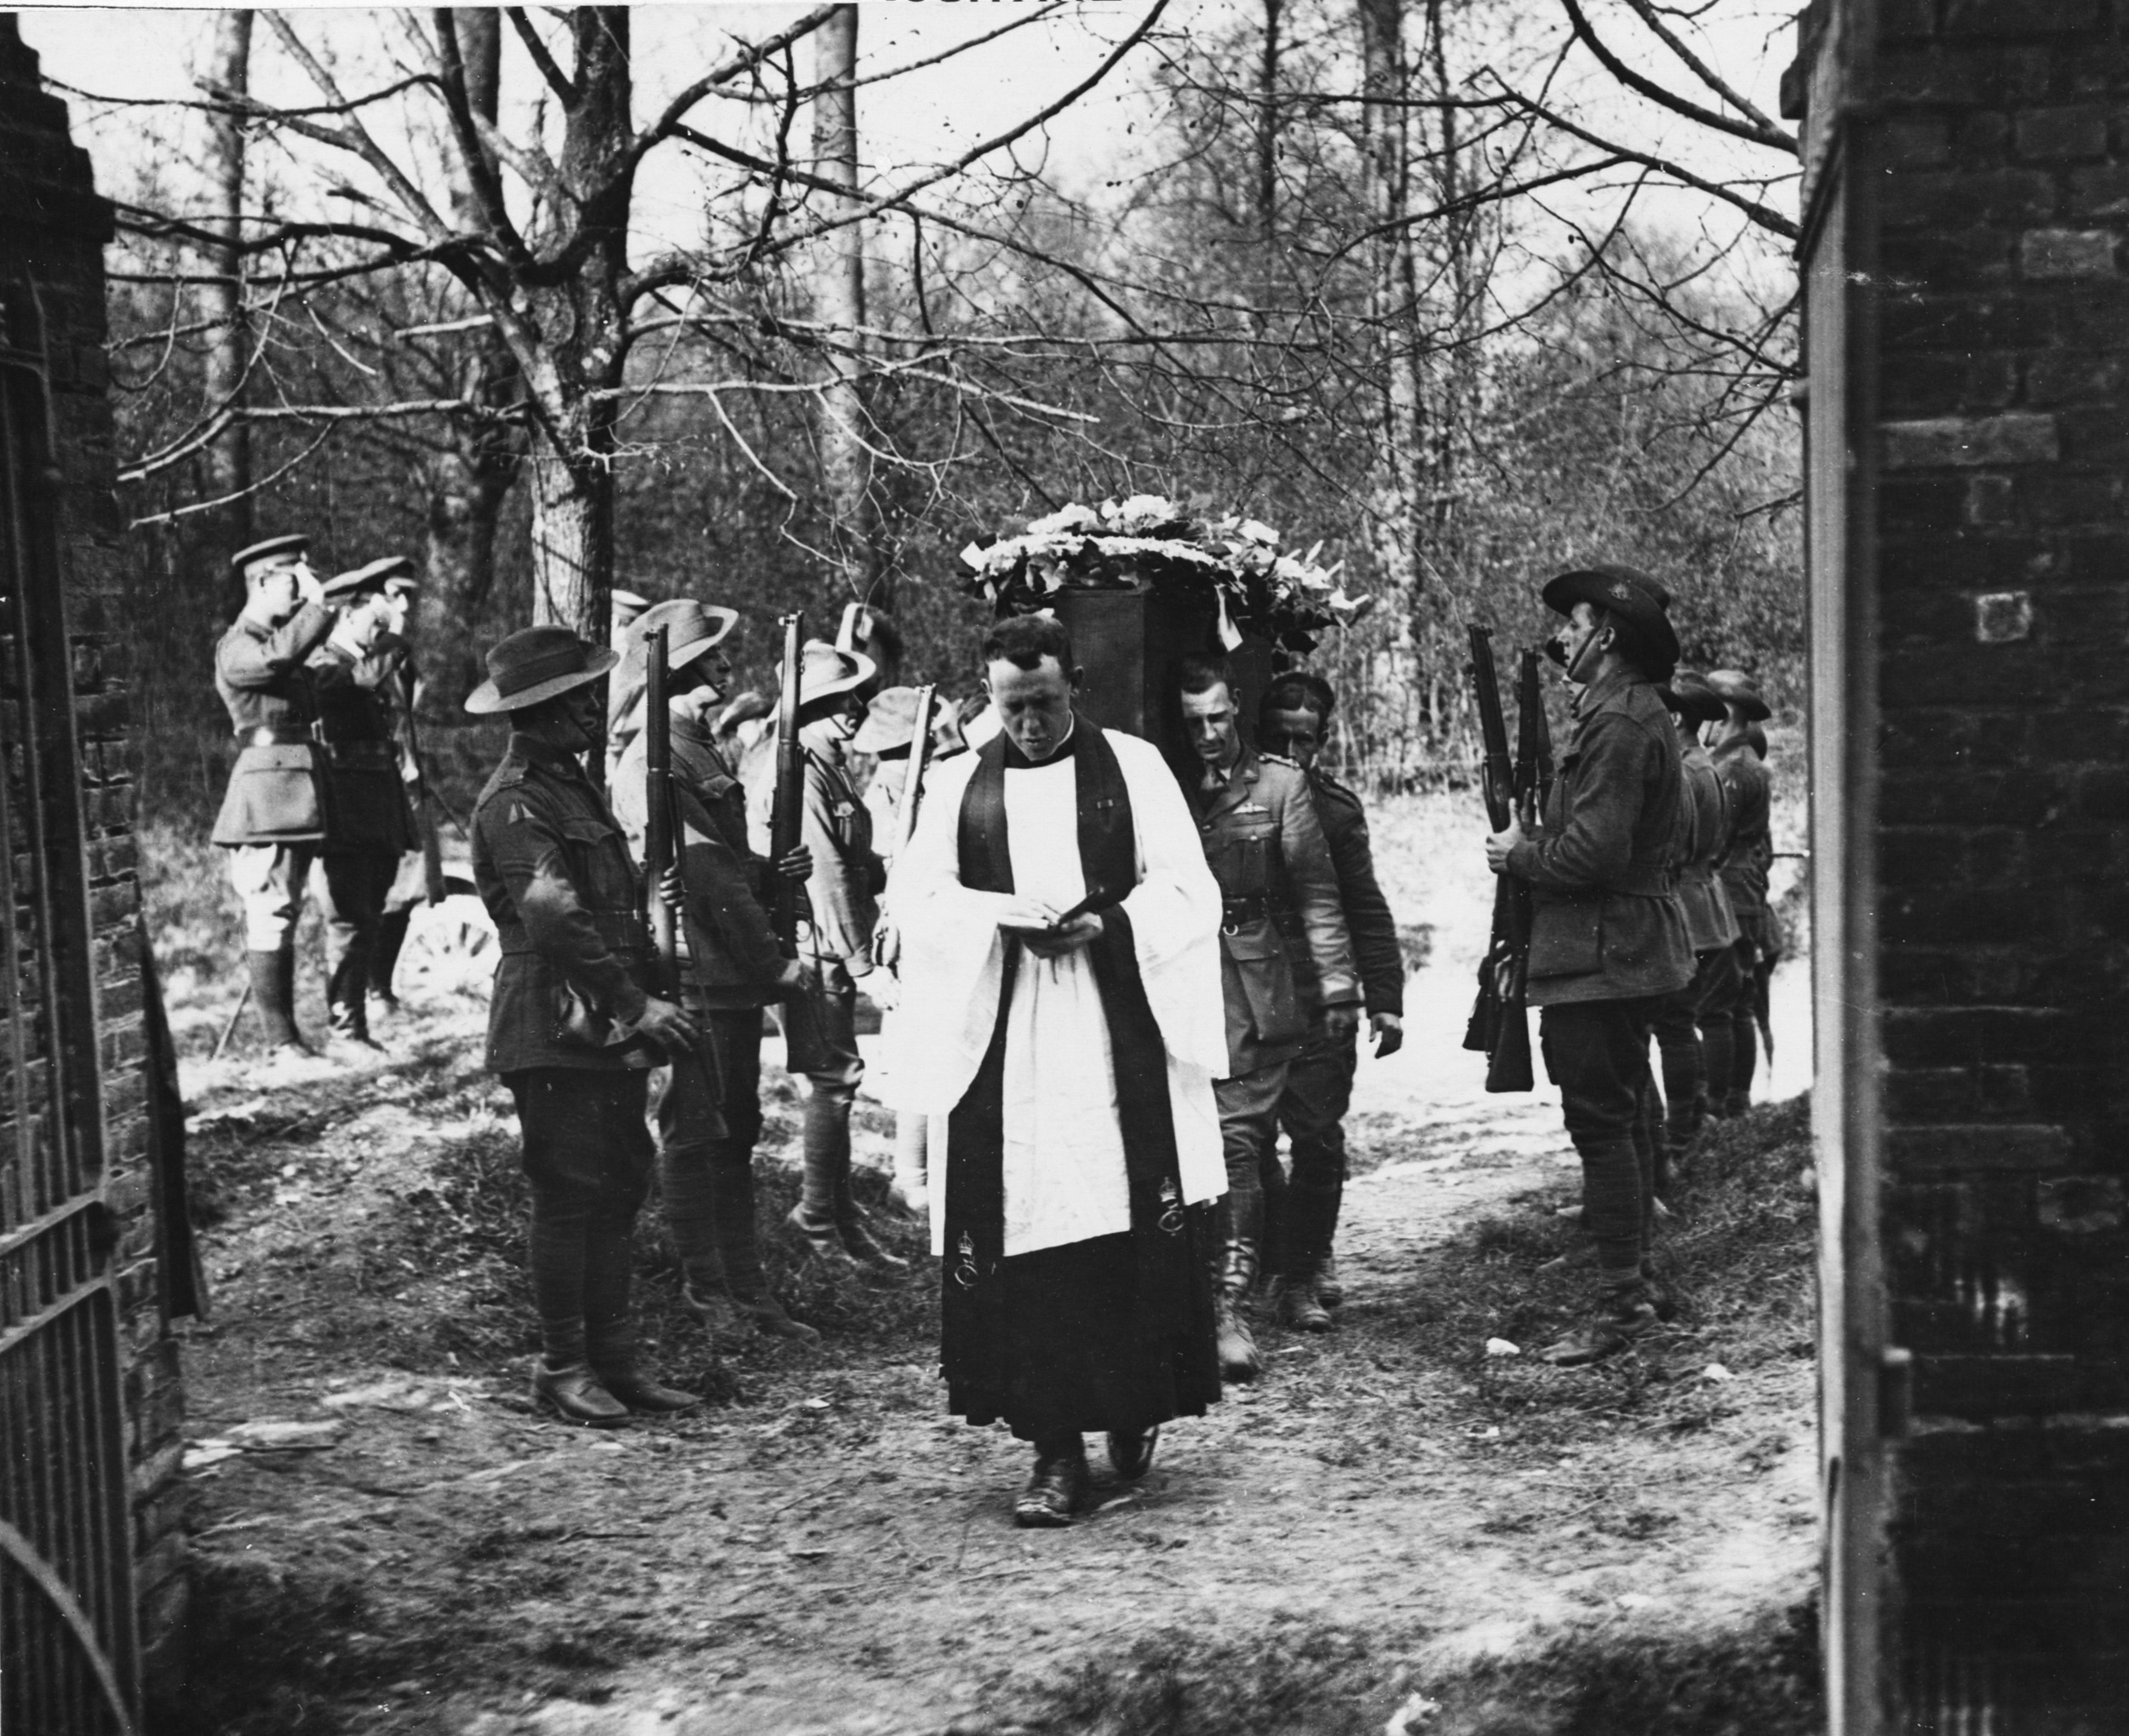 The funeral of Manfred von Richthofen, Germany's most successful fighter ace of World War One, who was buried by the Allies with full military honours.